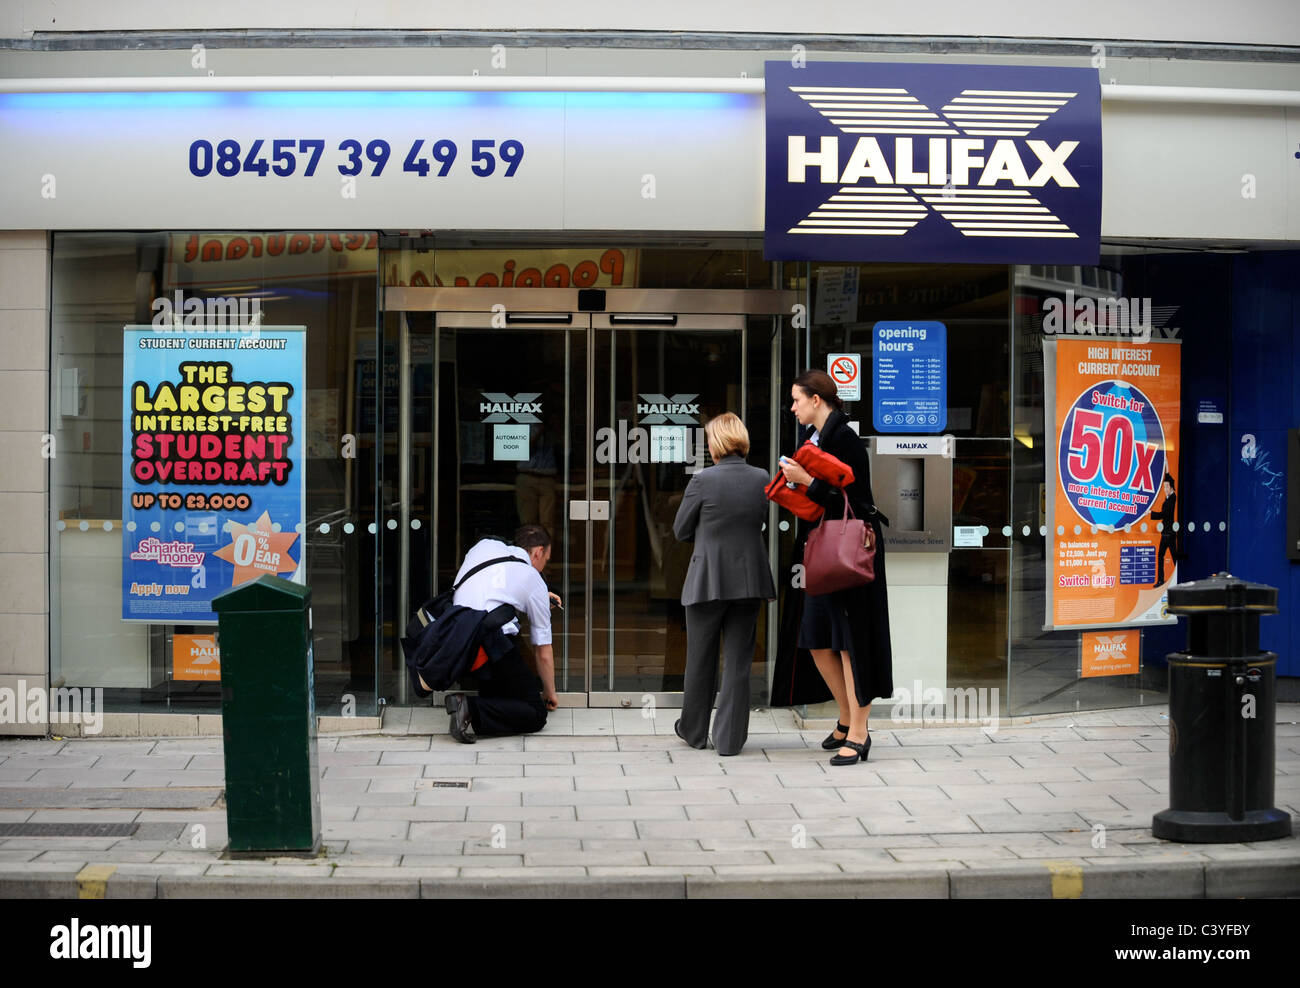 Staff lock up after work at The Cheltenham branch of The Halifax Bank Re. Merger of HBOS by Lloyds TSB in 2008 / - Stock Image